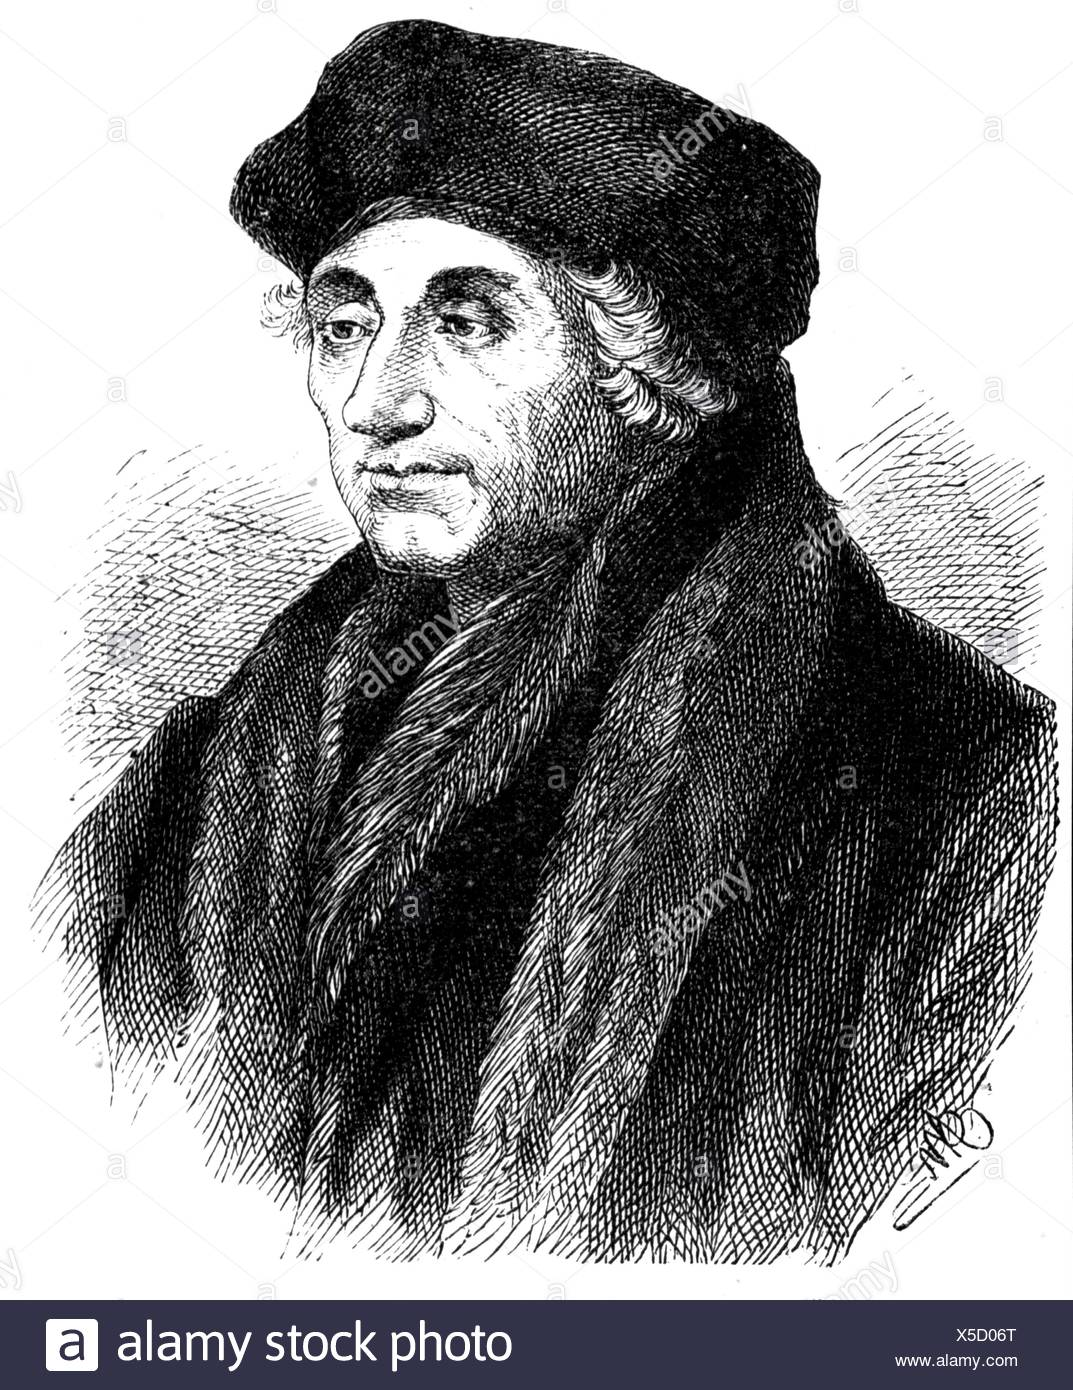 Erasmus of Rotterdam, 27.10.1467 (?) - 12.7.1536, Dutch scholar, portrait, wood engraving by Adolf Neumann, 19th century, Additional-Rights-Clearances-NA - Stock Image